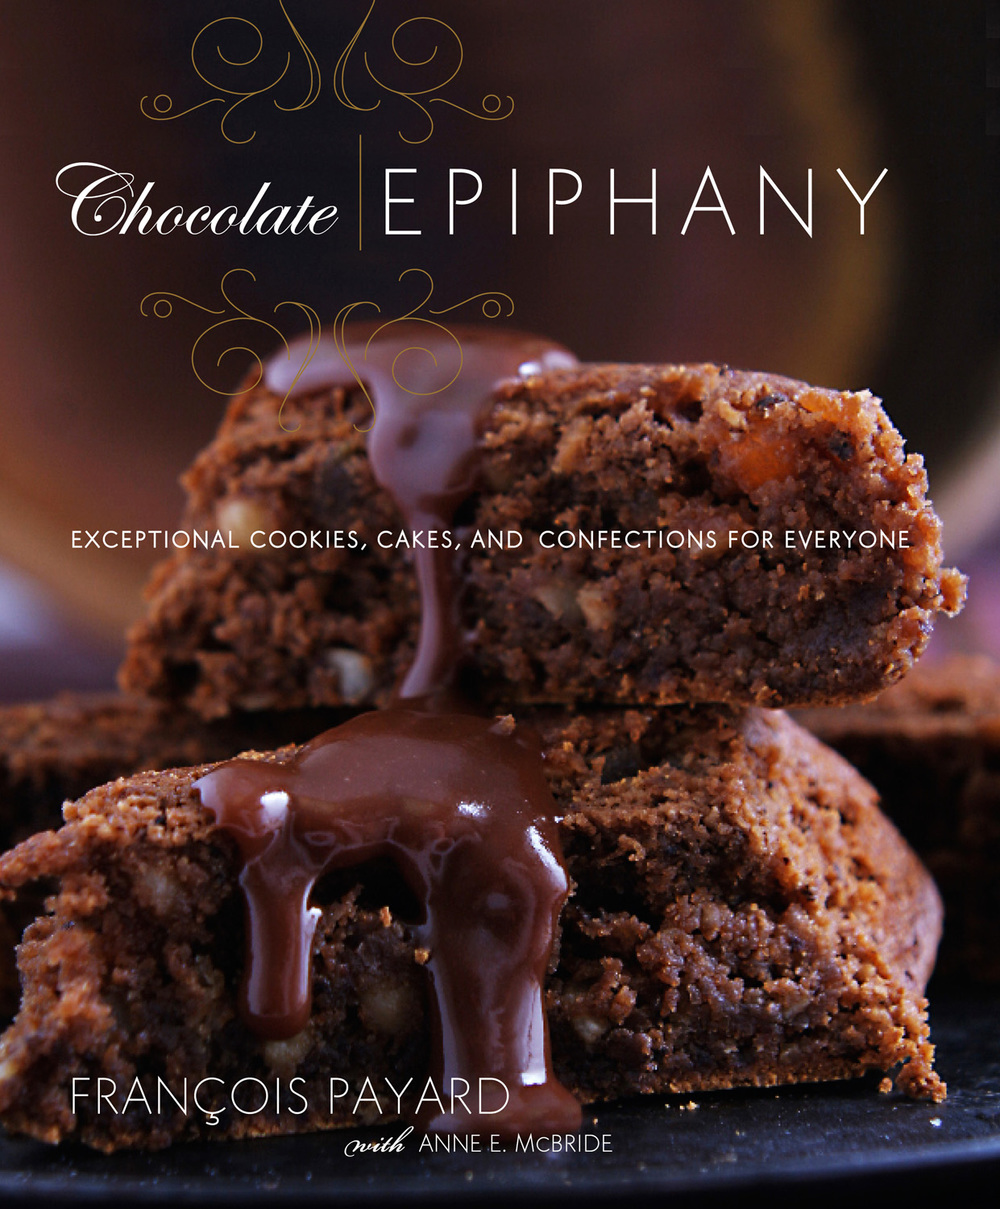 Maureen-Erbe-Design-Chocolate-Epiphany-Francoise-Payard01.jpg